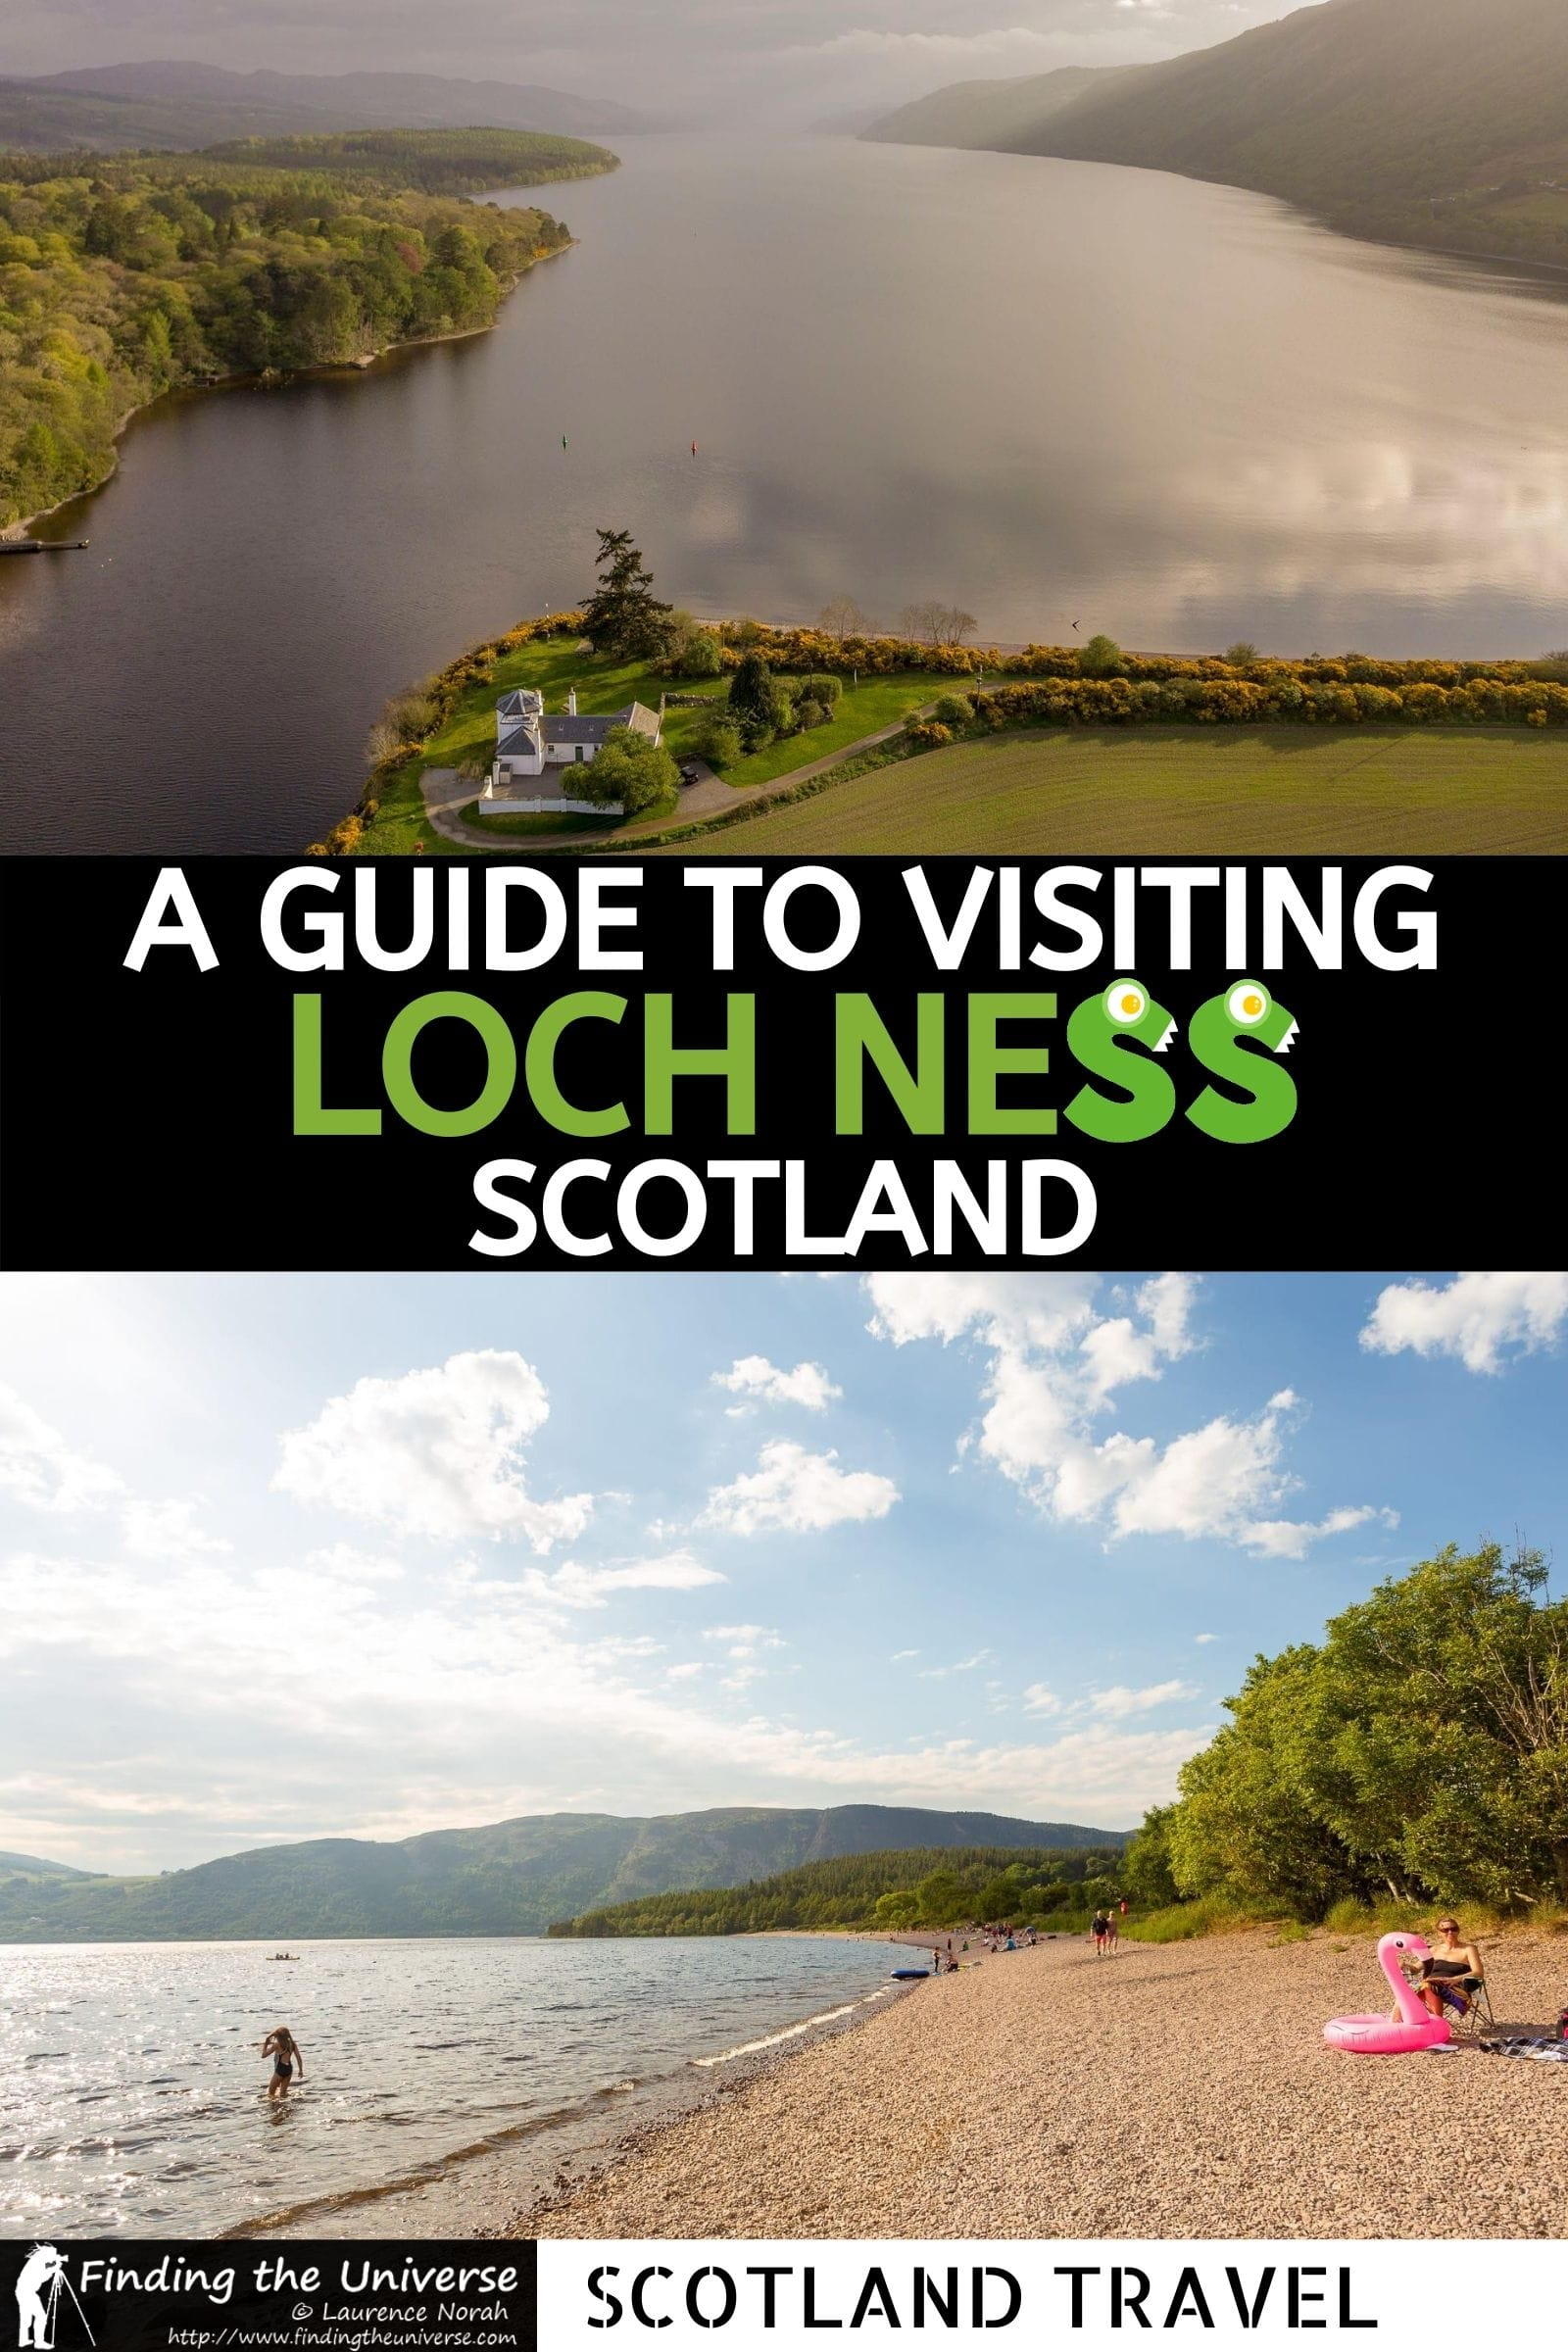 Detailed guide to visiting Loch Ness in Scotland. What to see at Loch Ness, how to get here, the best tours and where to stay!